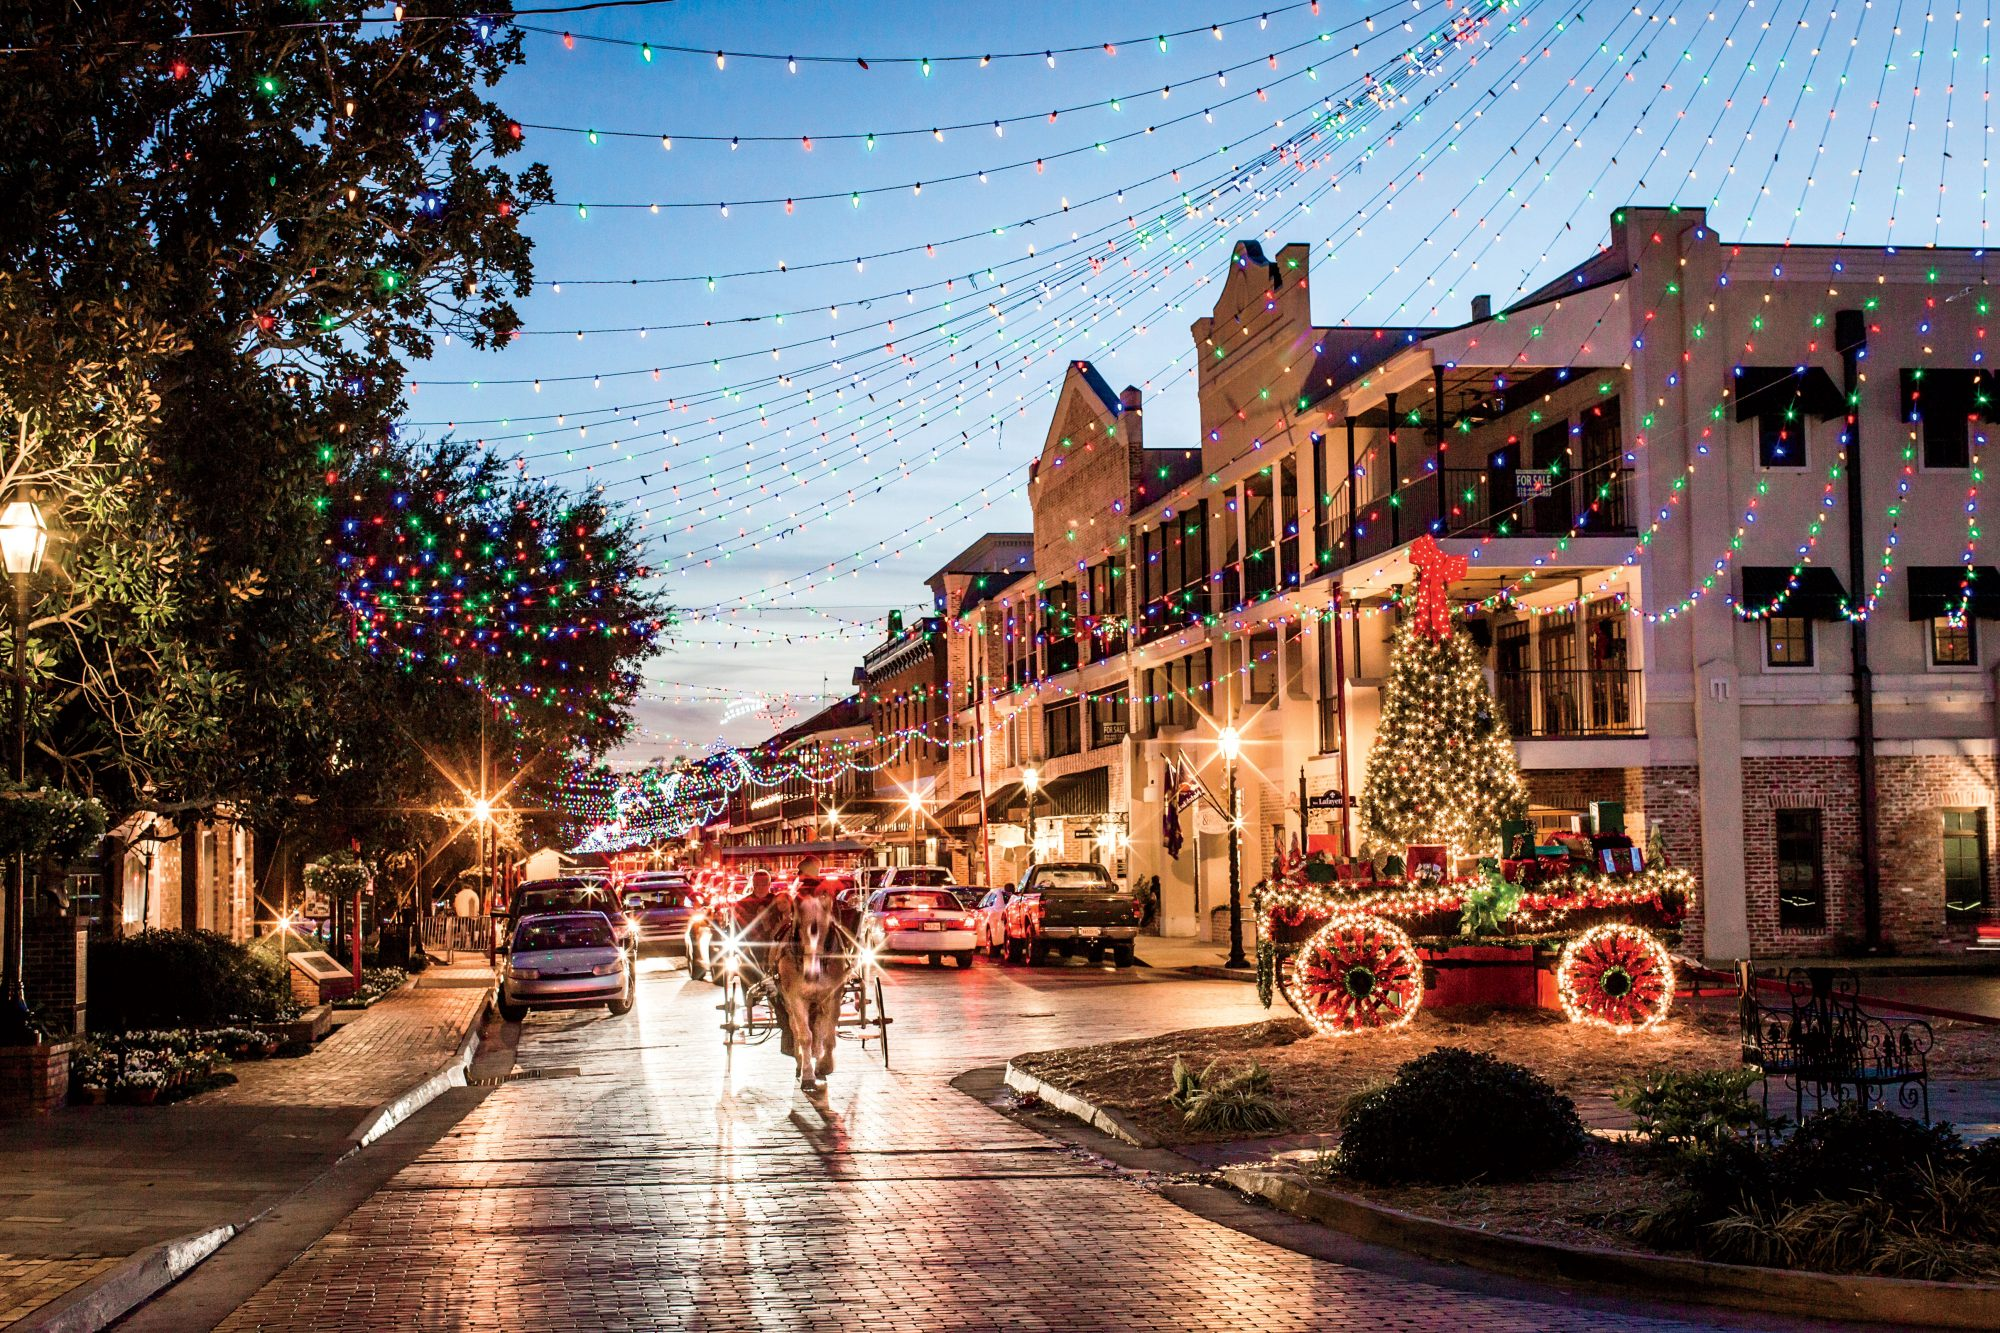 Natchitoches Louisiana Christmas Festival 2020 Why You Need to See the Natchitoches Christmas Lights This Year